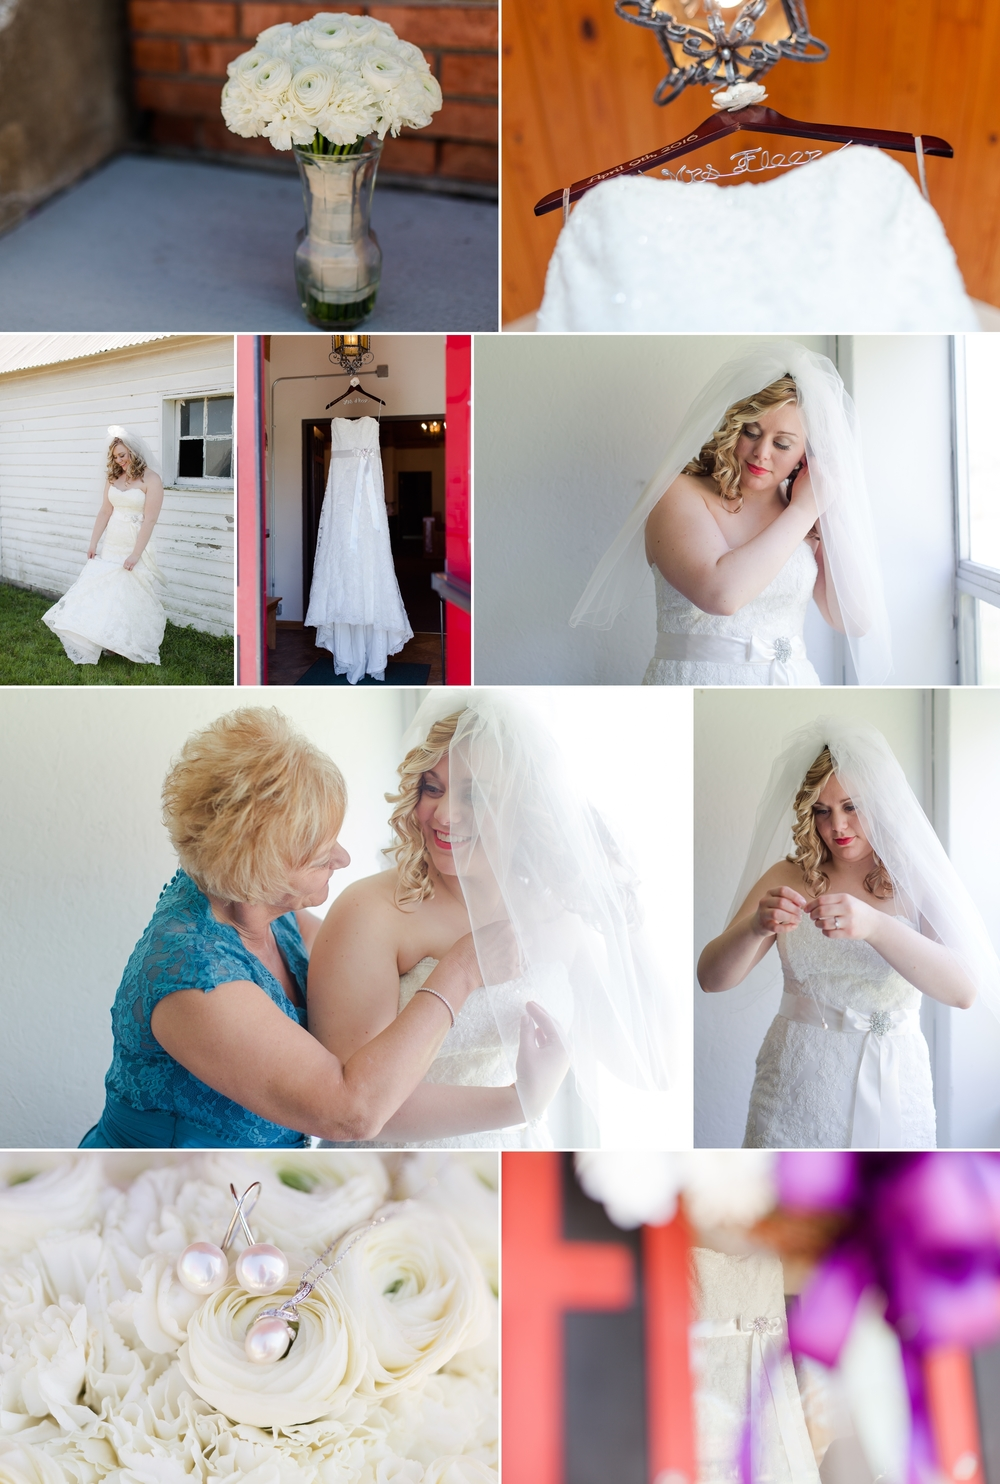 winery_wedding_photography_stl_st_louis_spring_april_poses 1.jpg